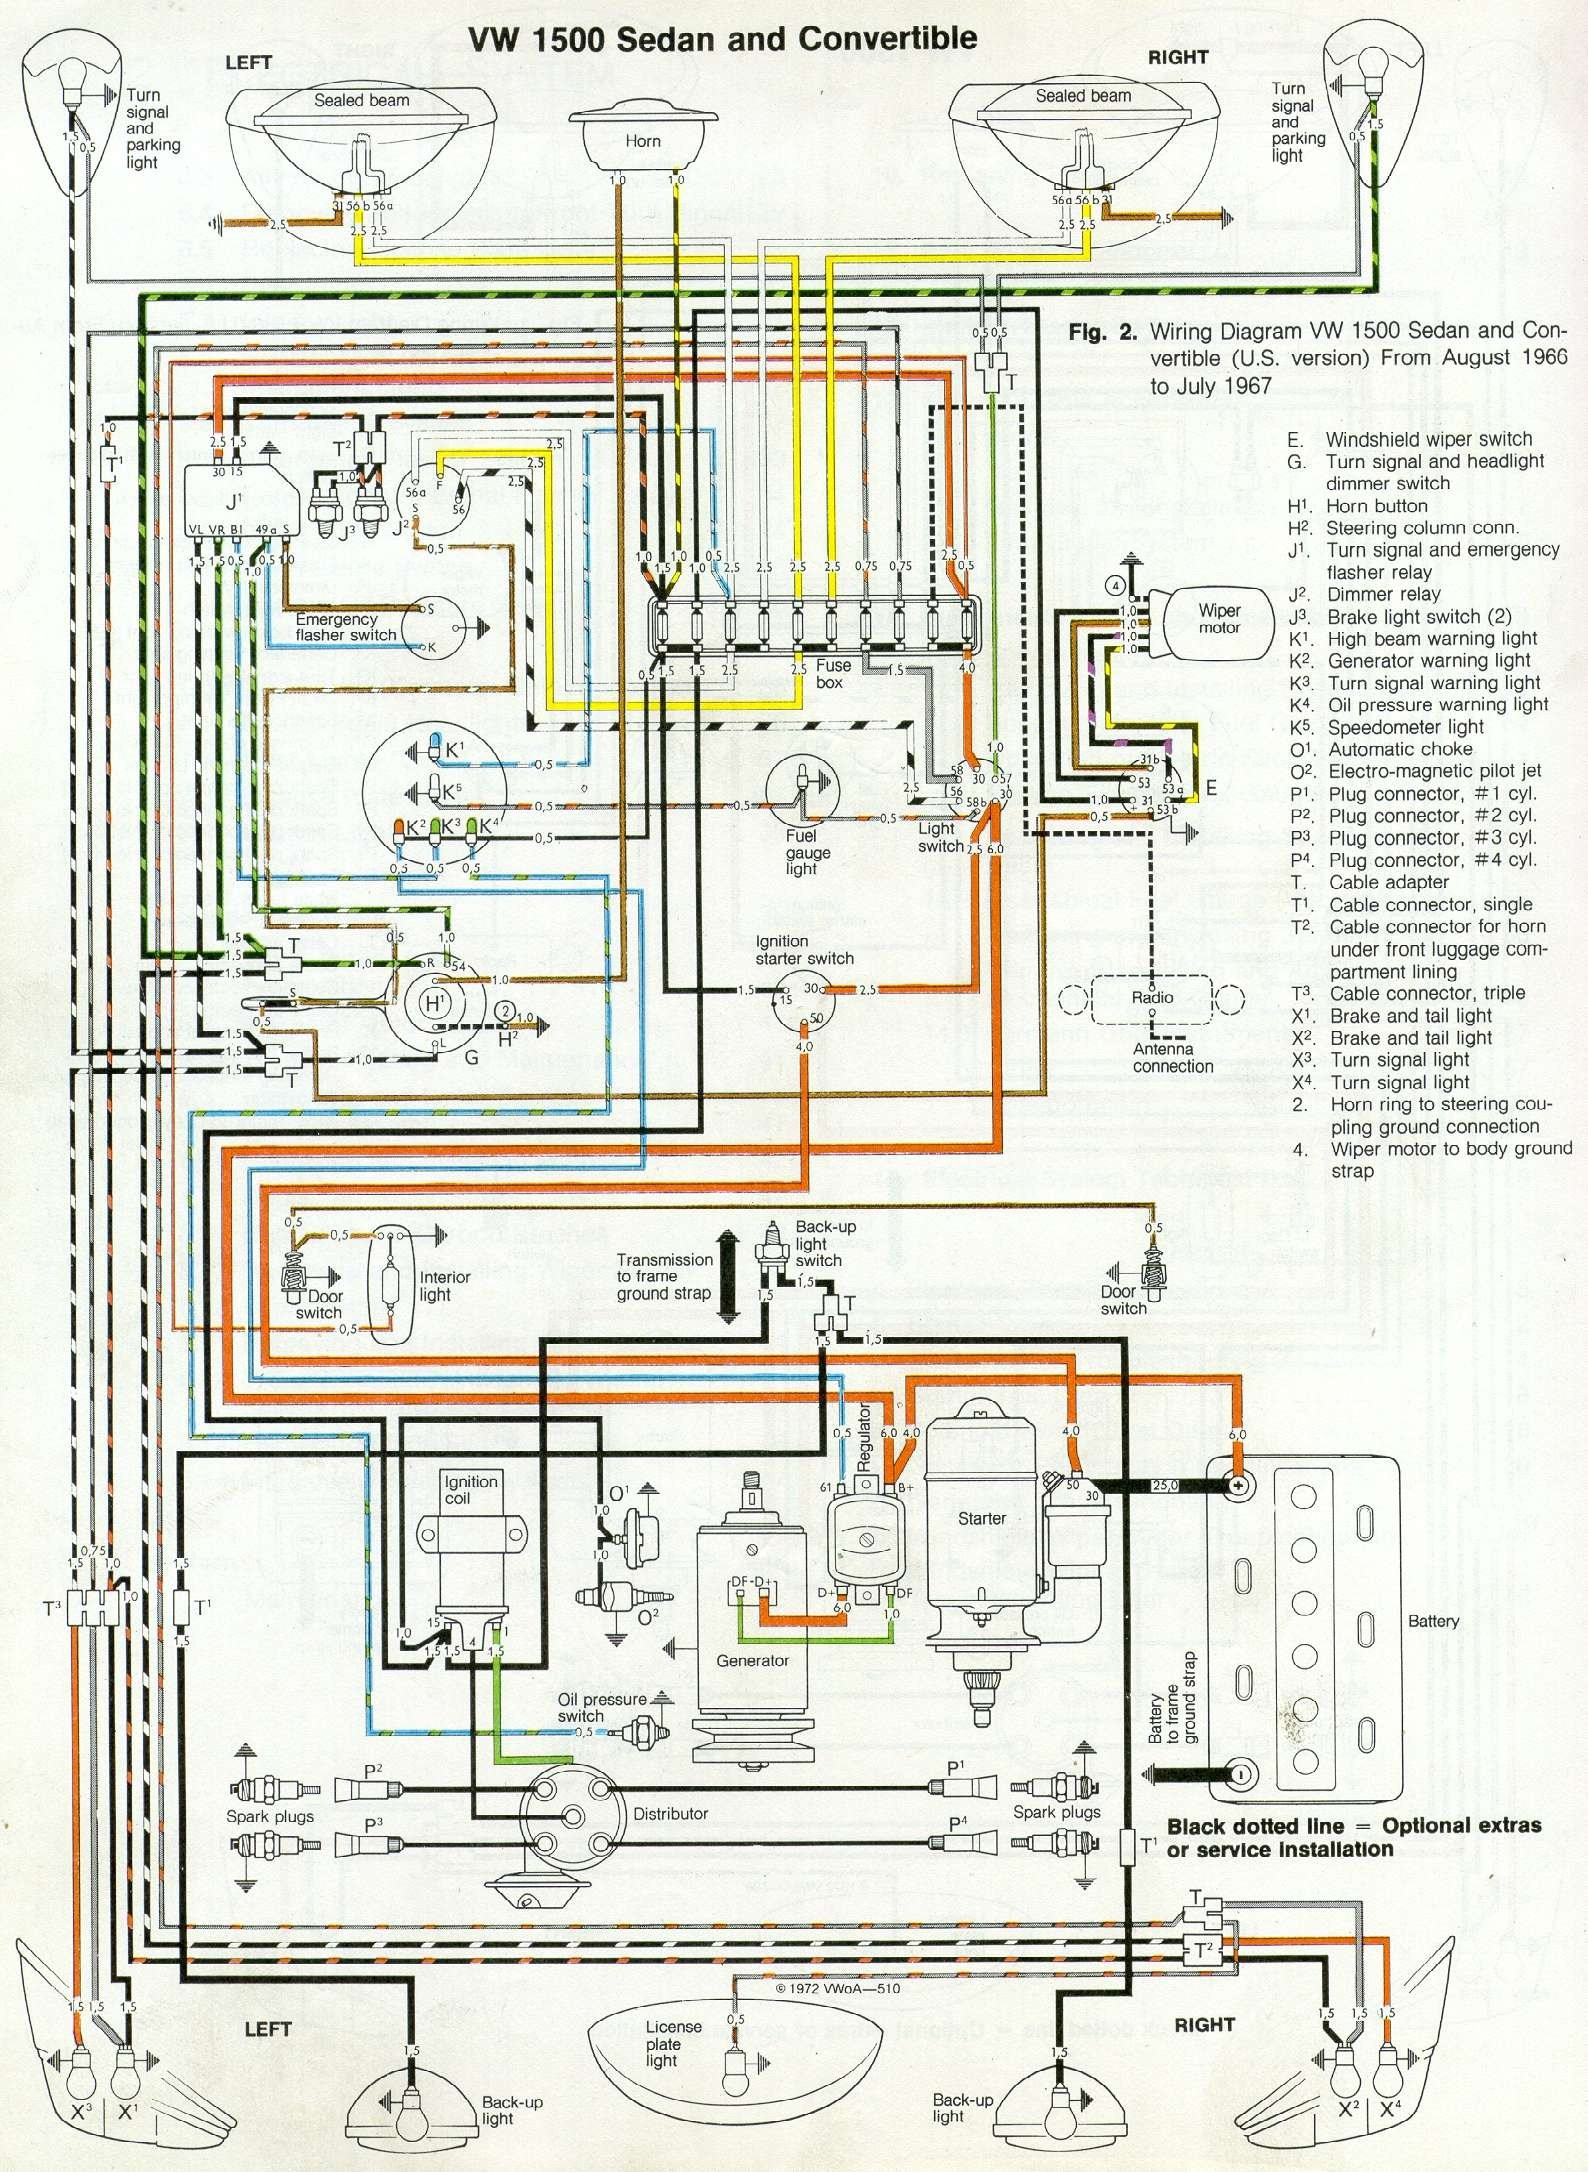 ☑ 1965 Vw Van Wiring Diagram HD Quality ☑ kaco-diagrambase.lesflaneurs.itDiagram Database